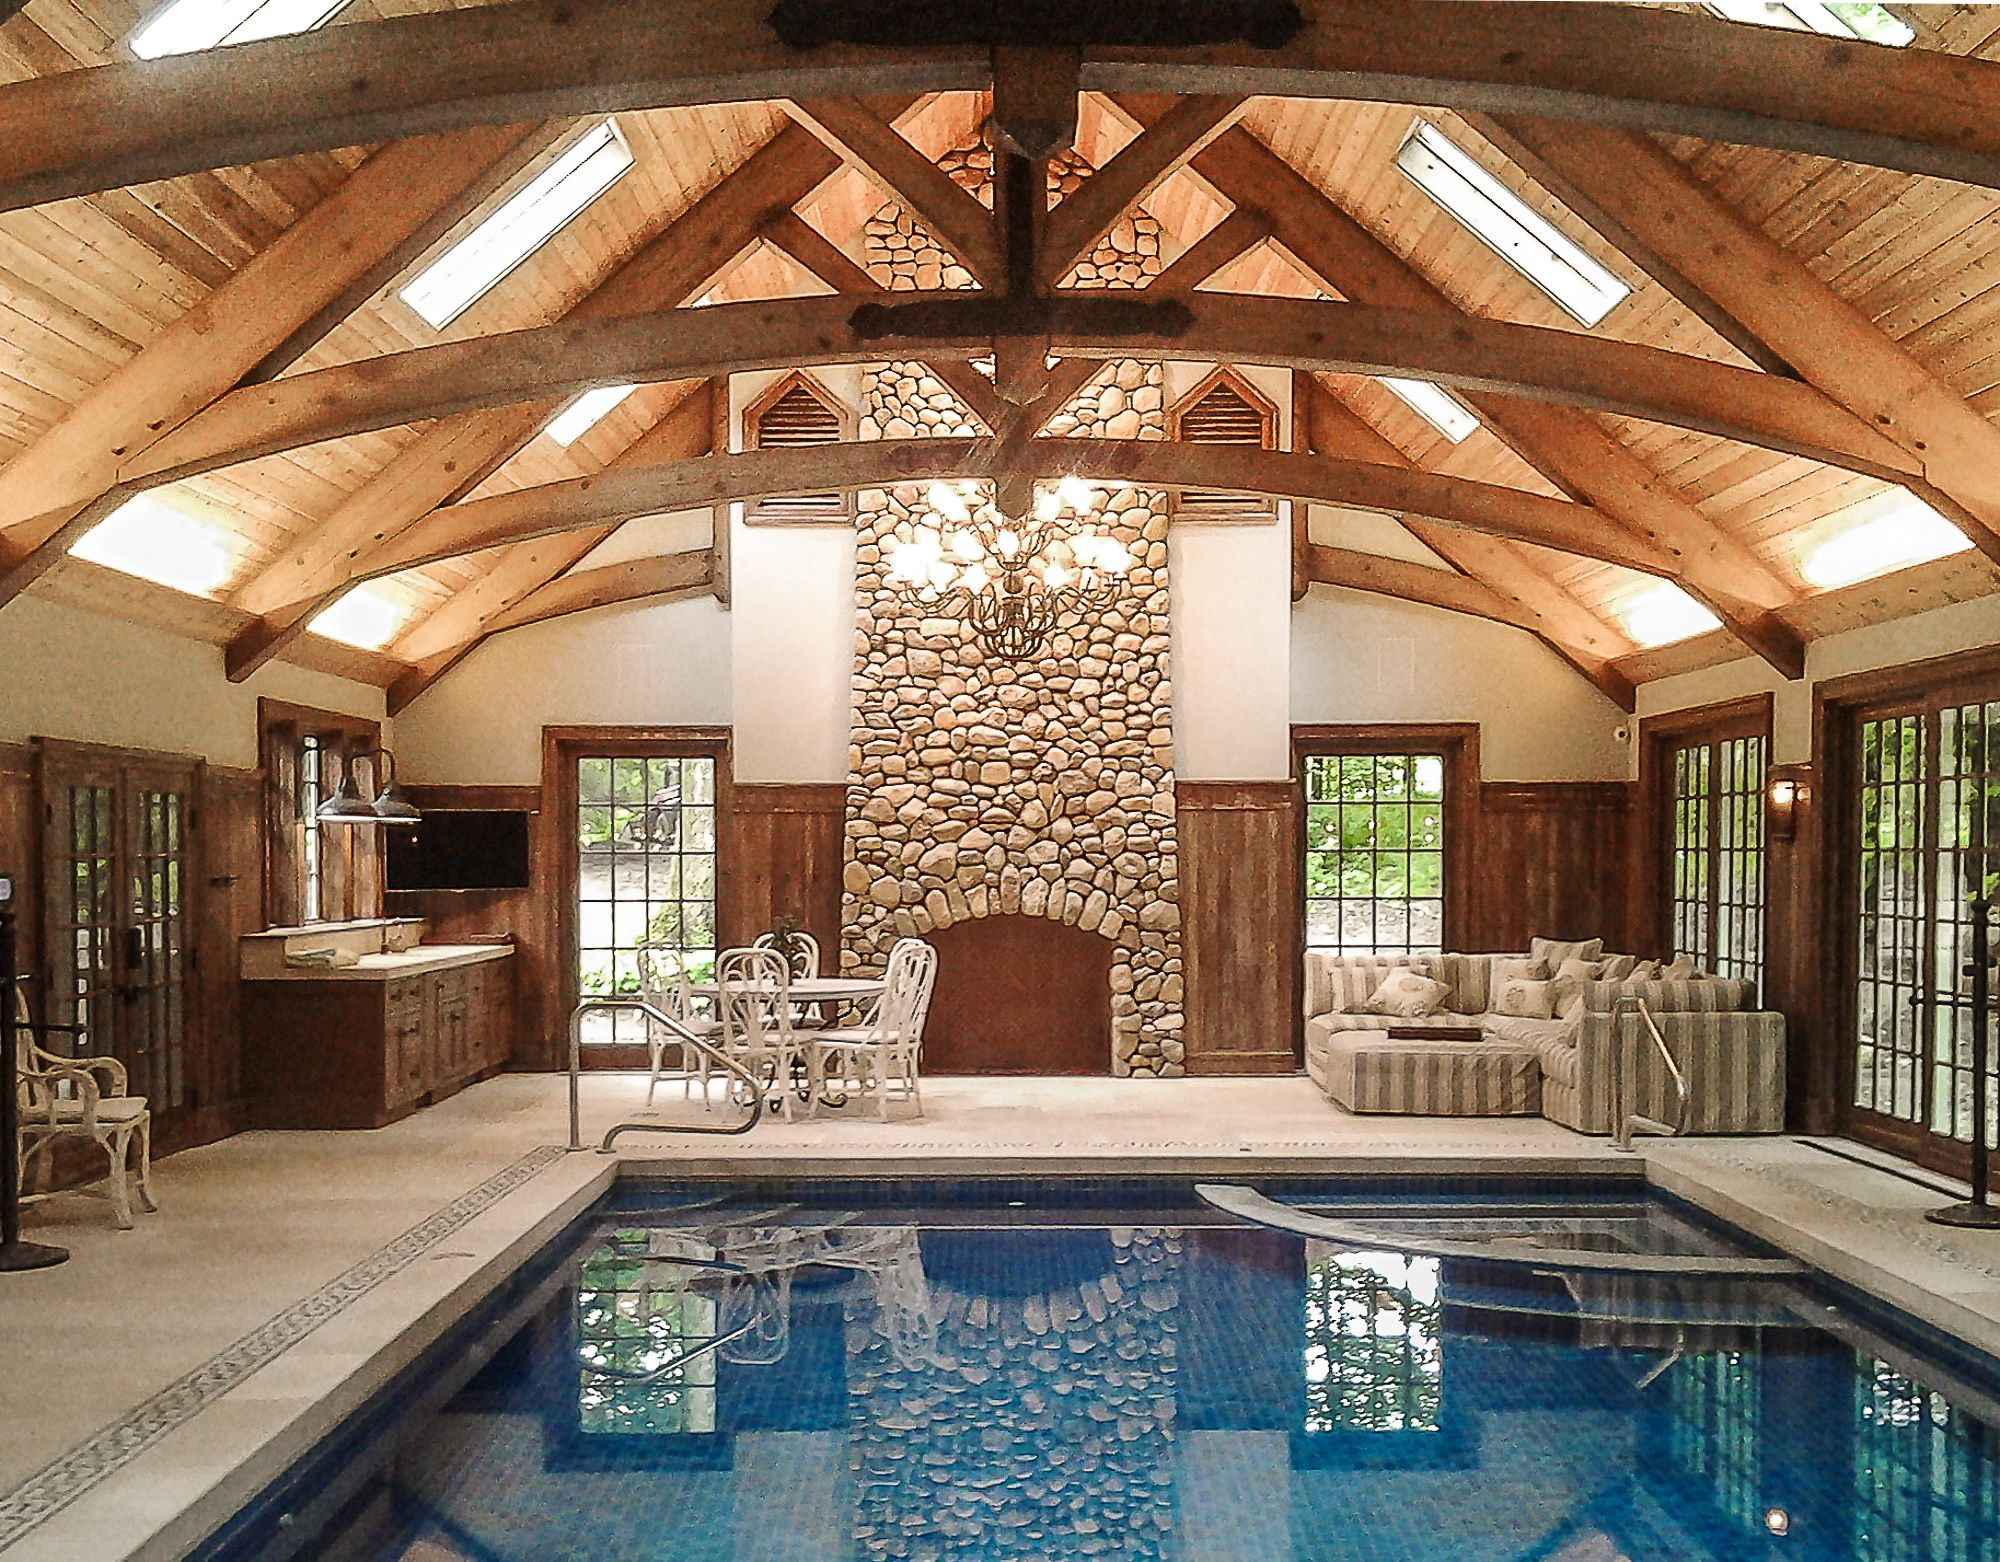 Reed Pool House | Heavy Timber Arches | King Post Trusses